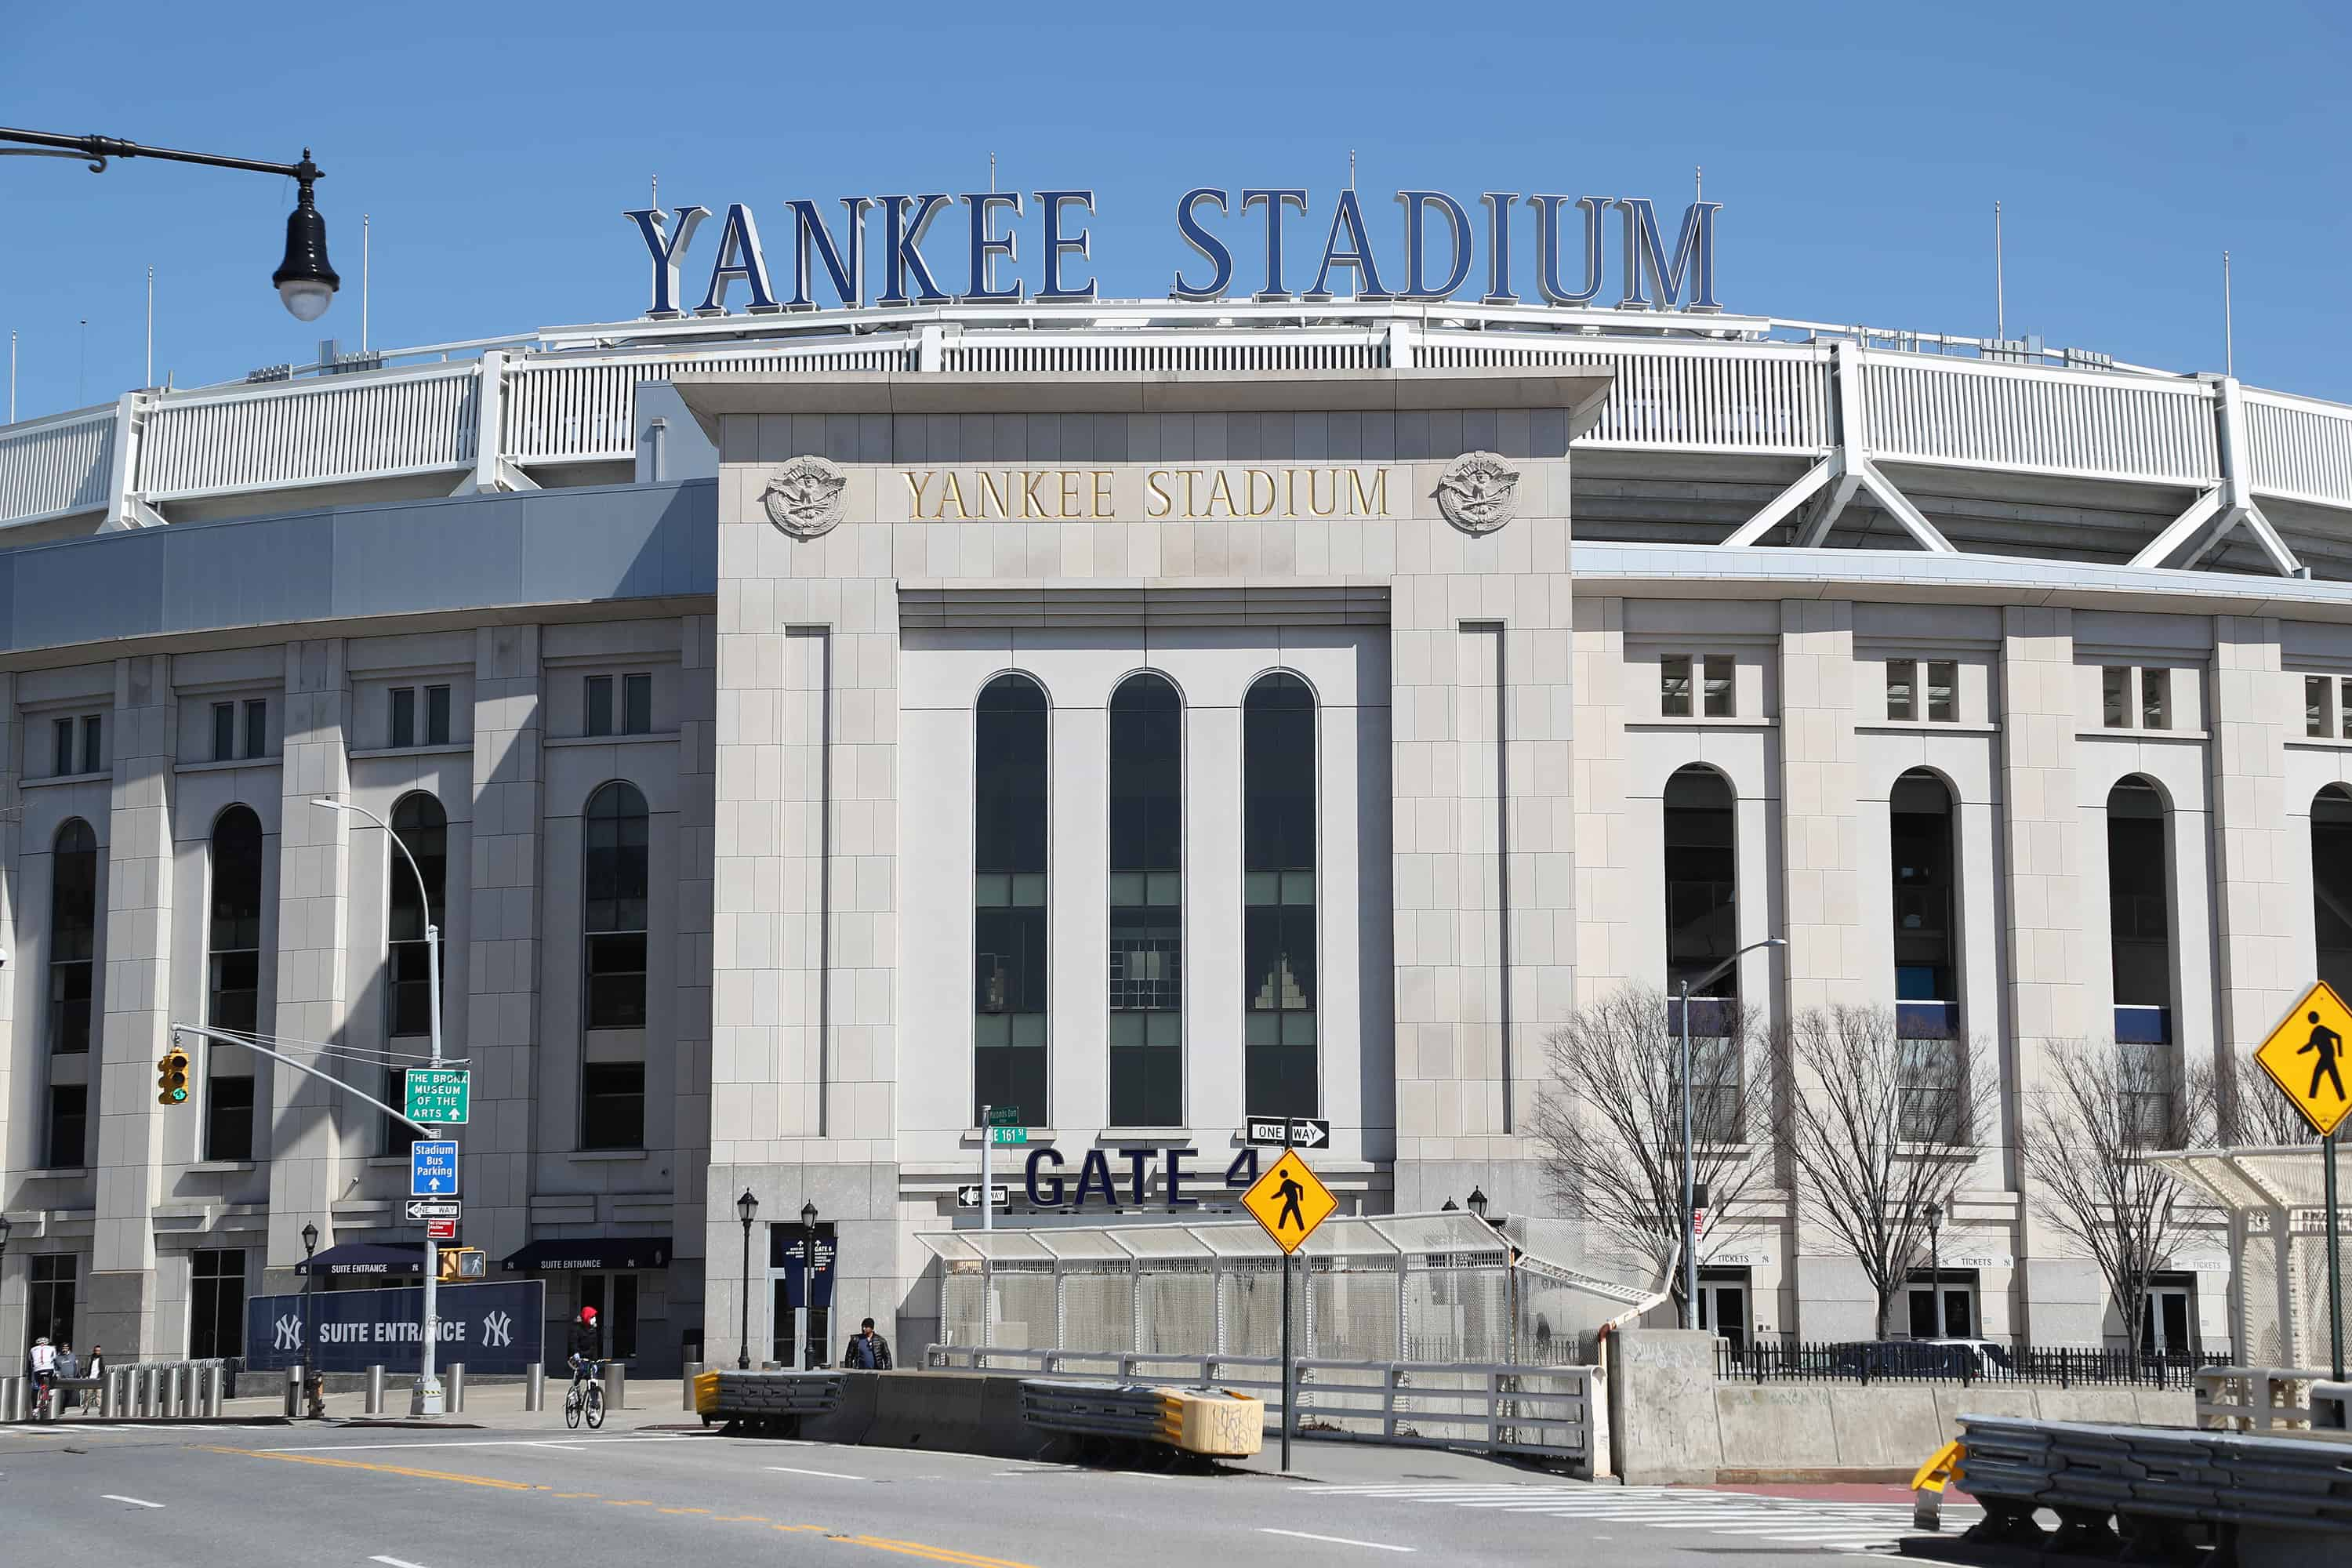 As New Yorkers try to figure their new normal after the pandemic has changed the city, a drive-in event will take place outside of Yankee Stadium.